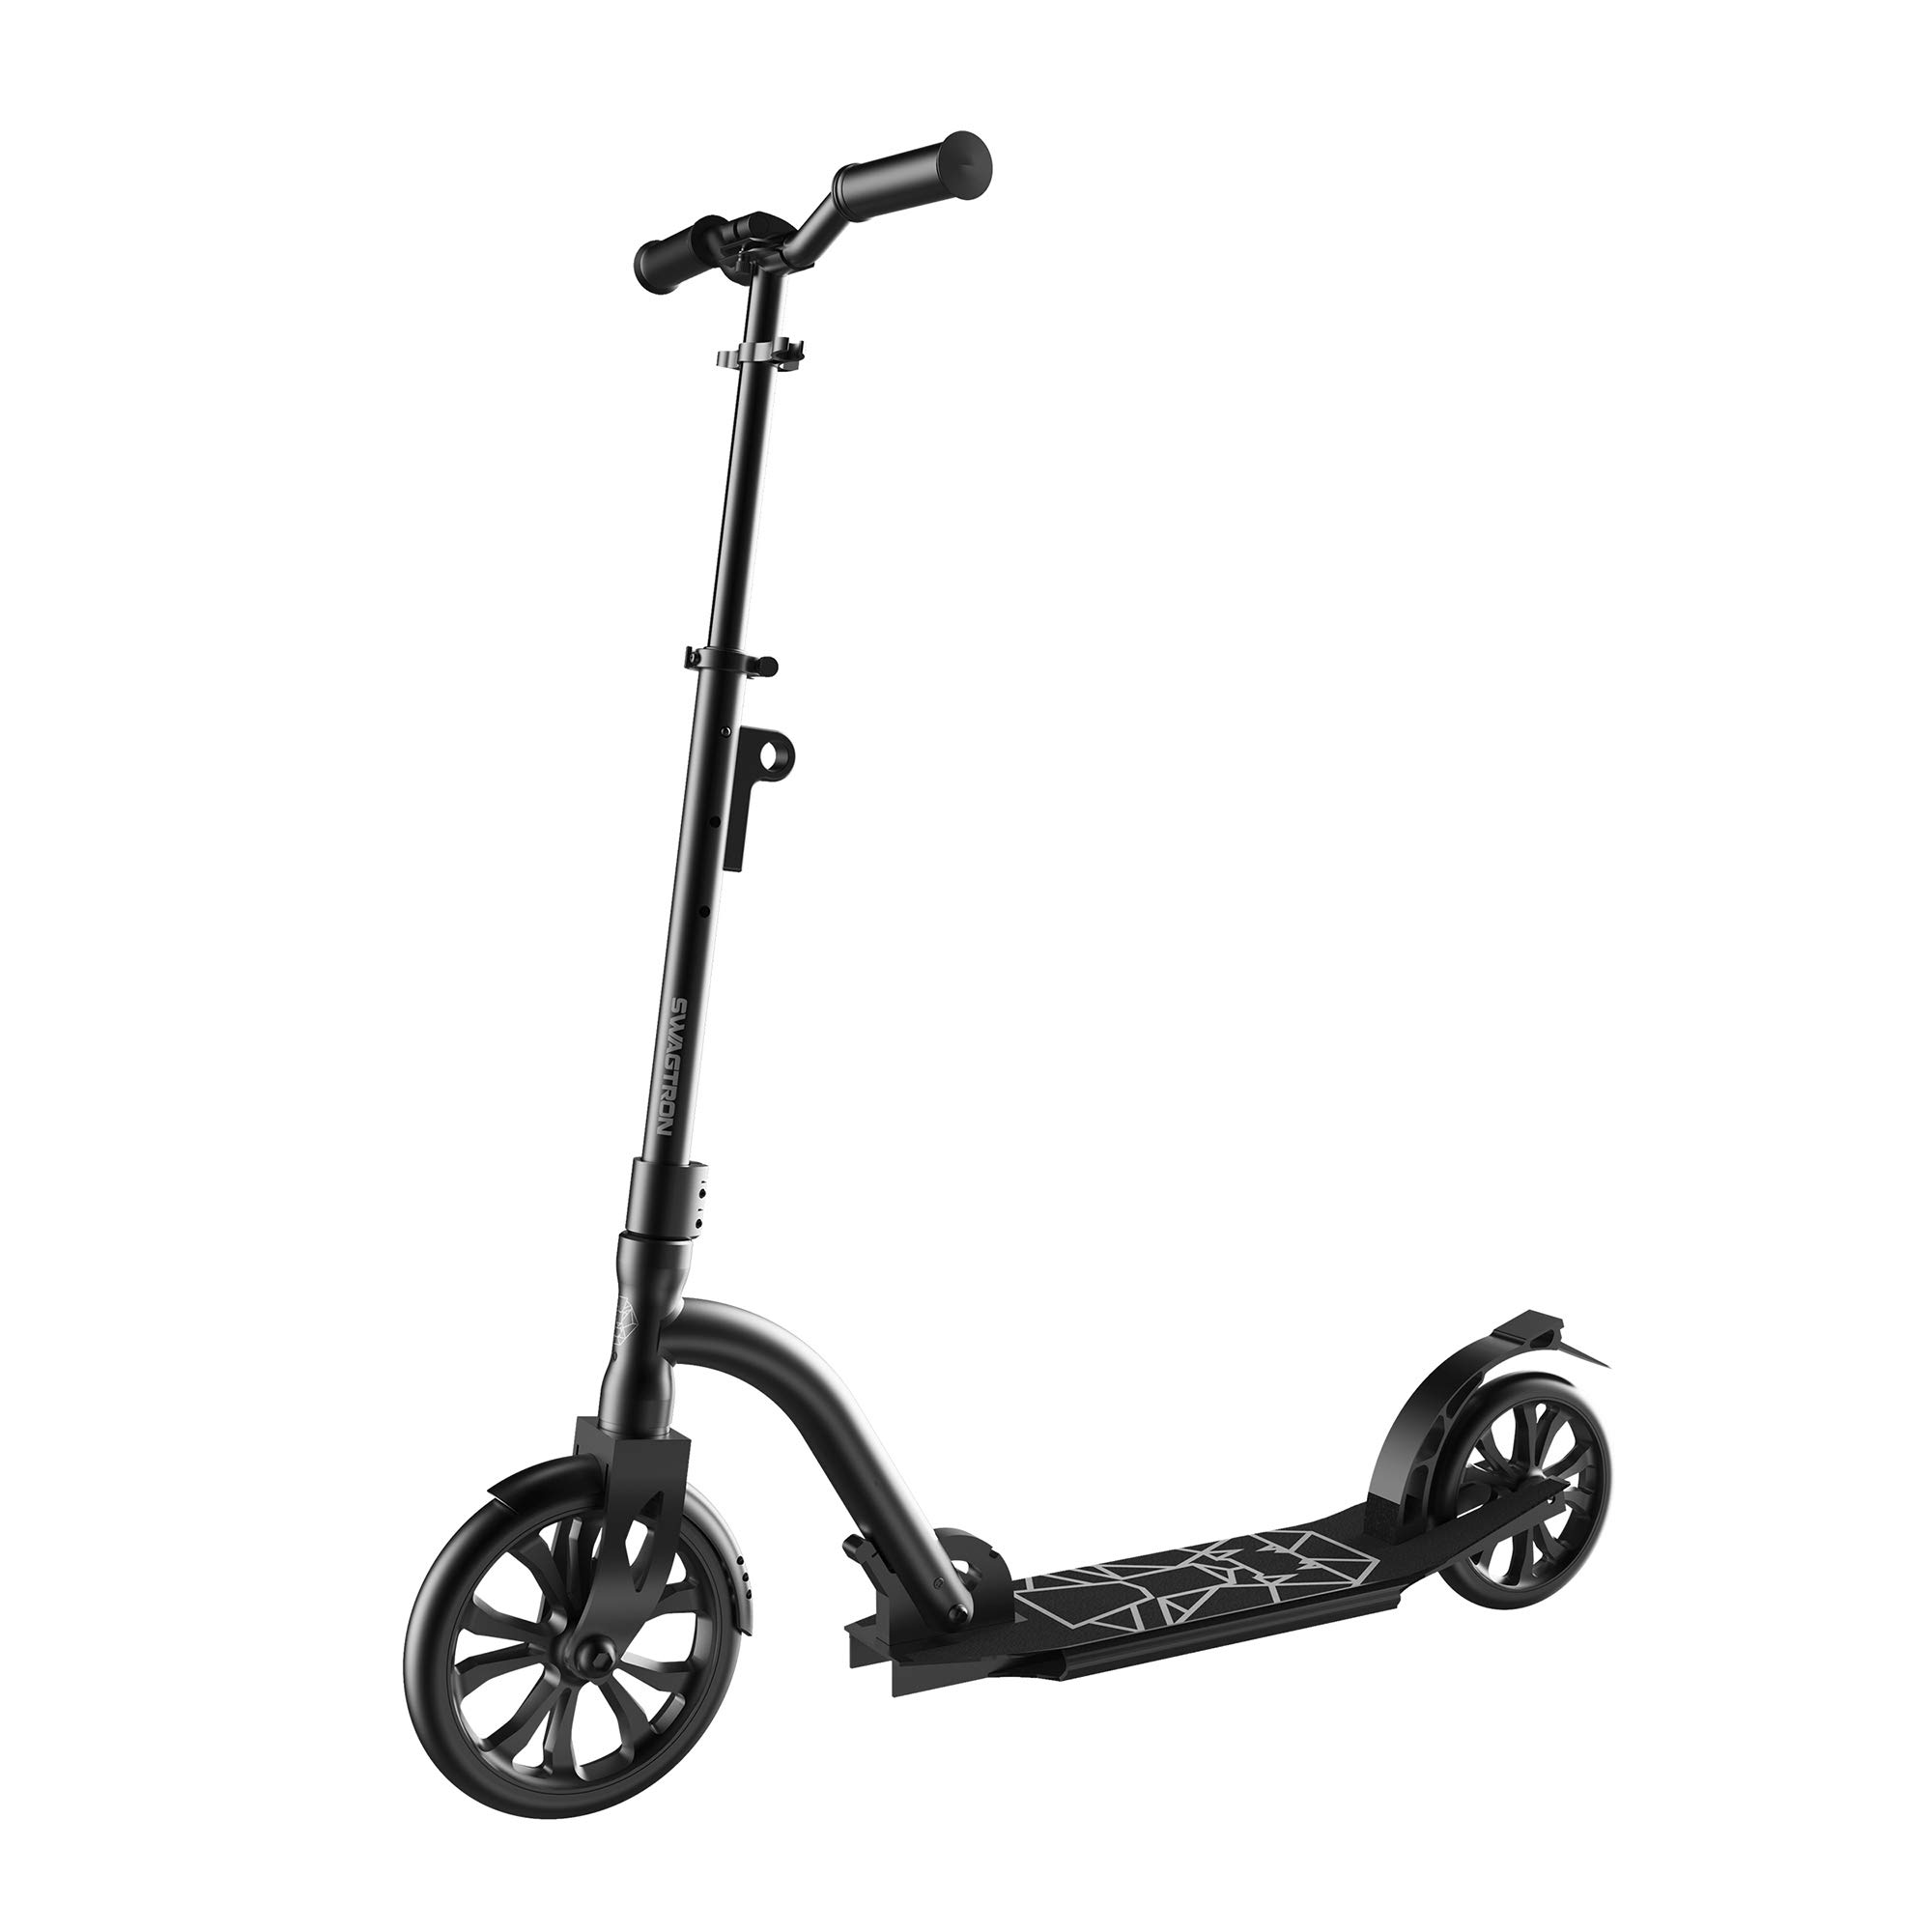 K9 Kick Scooter by Swagtron